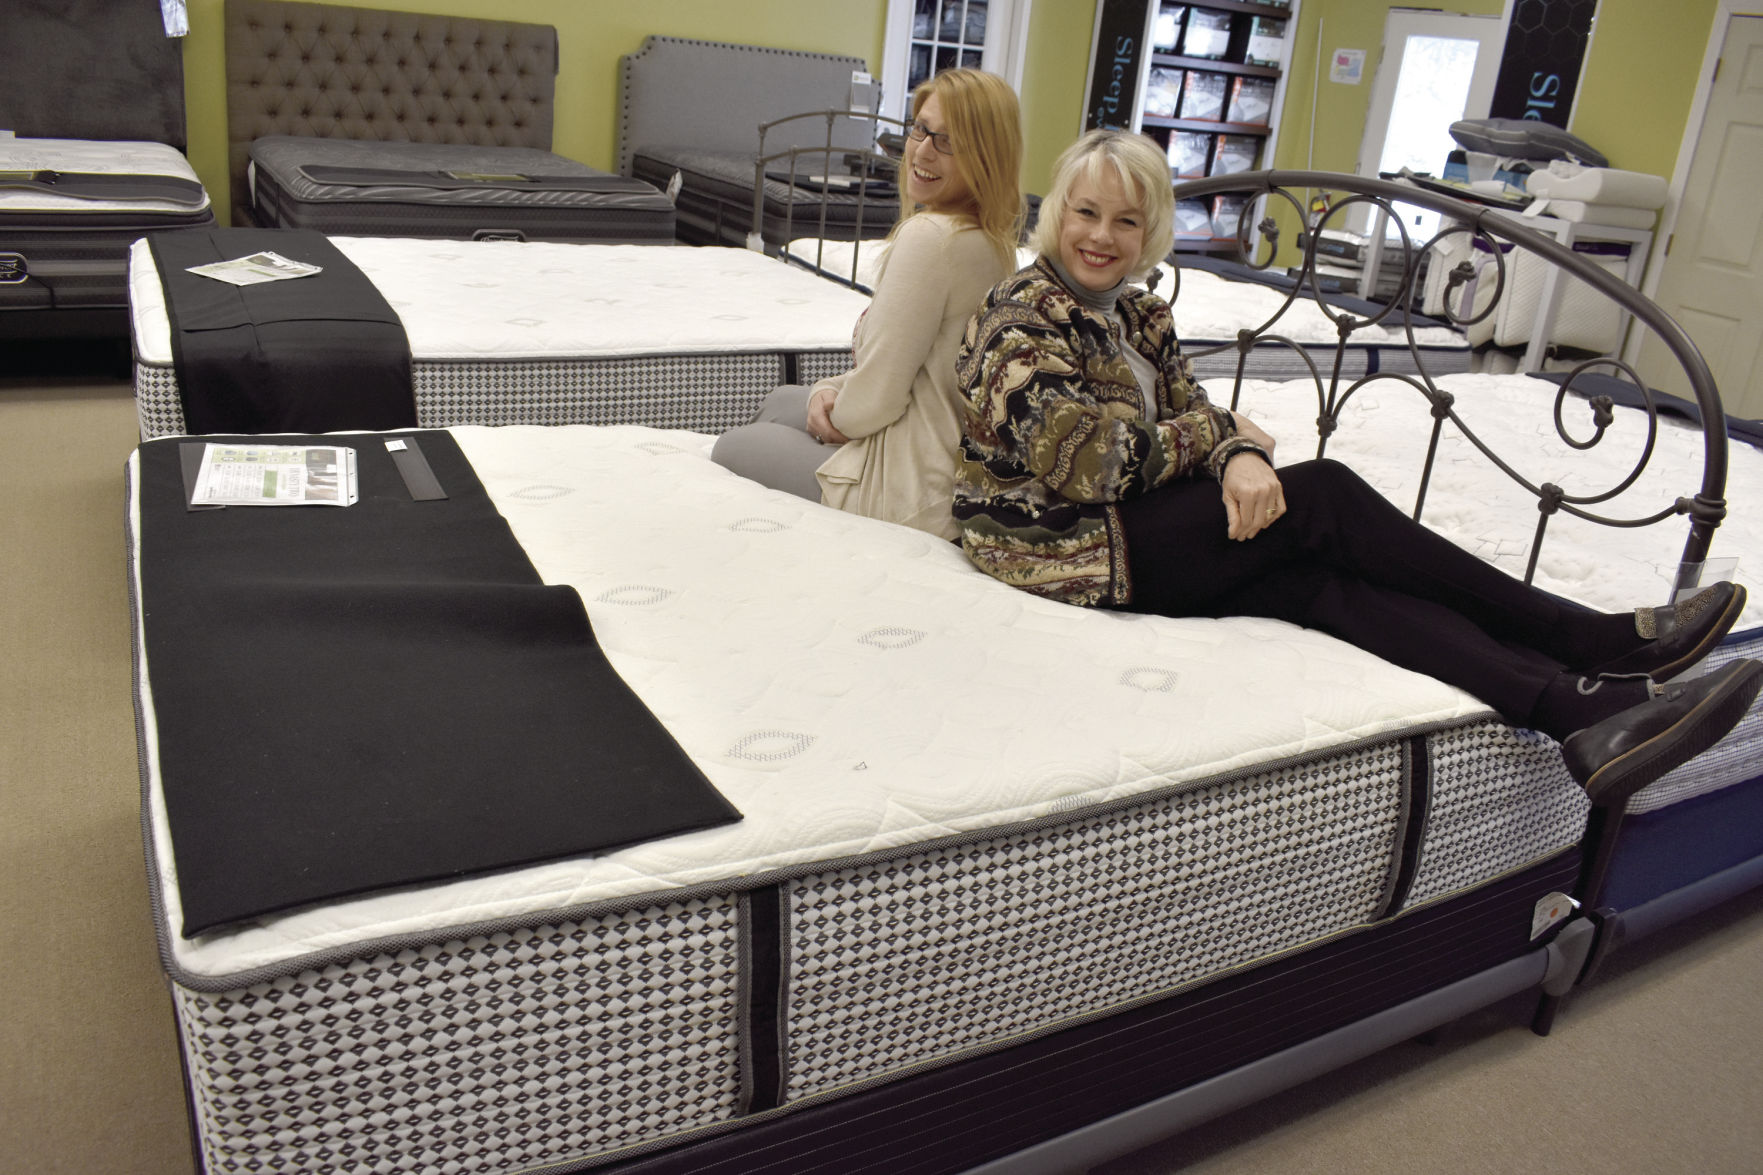 Merveilleux Meredith Furniture Store Takes On Mattress Industry